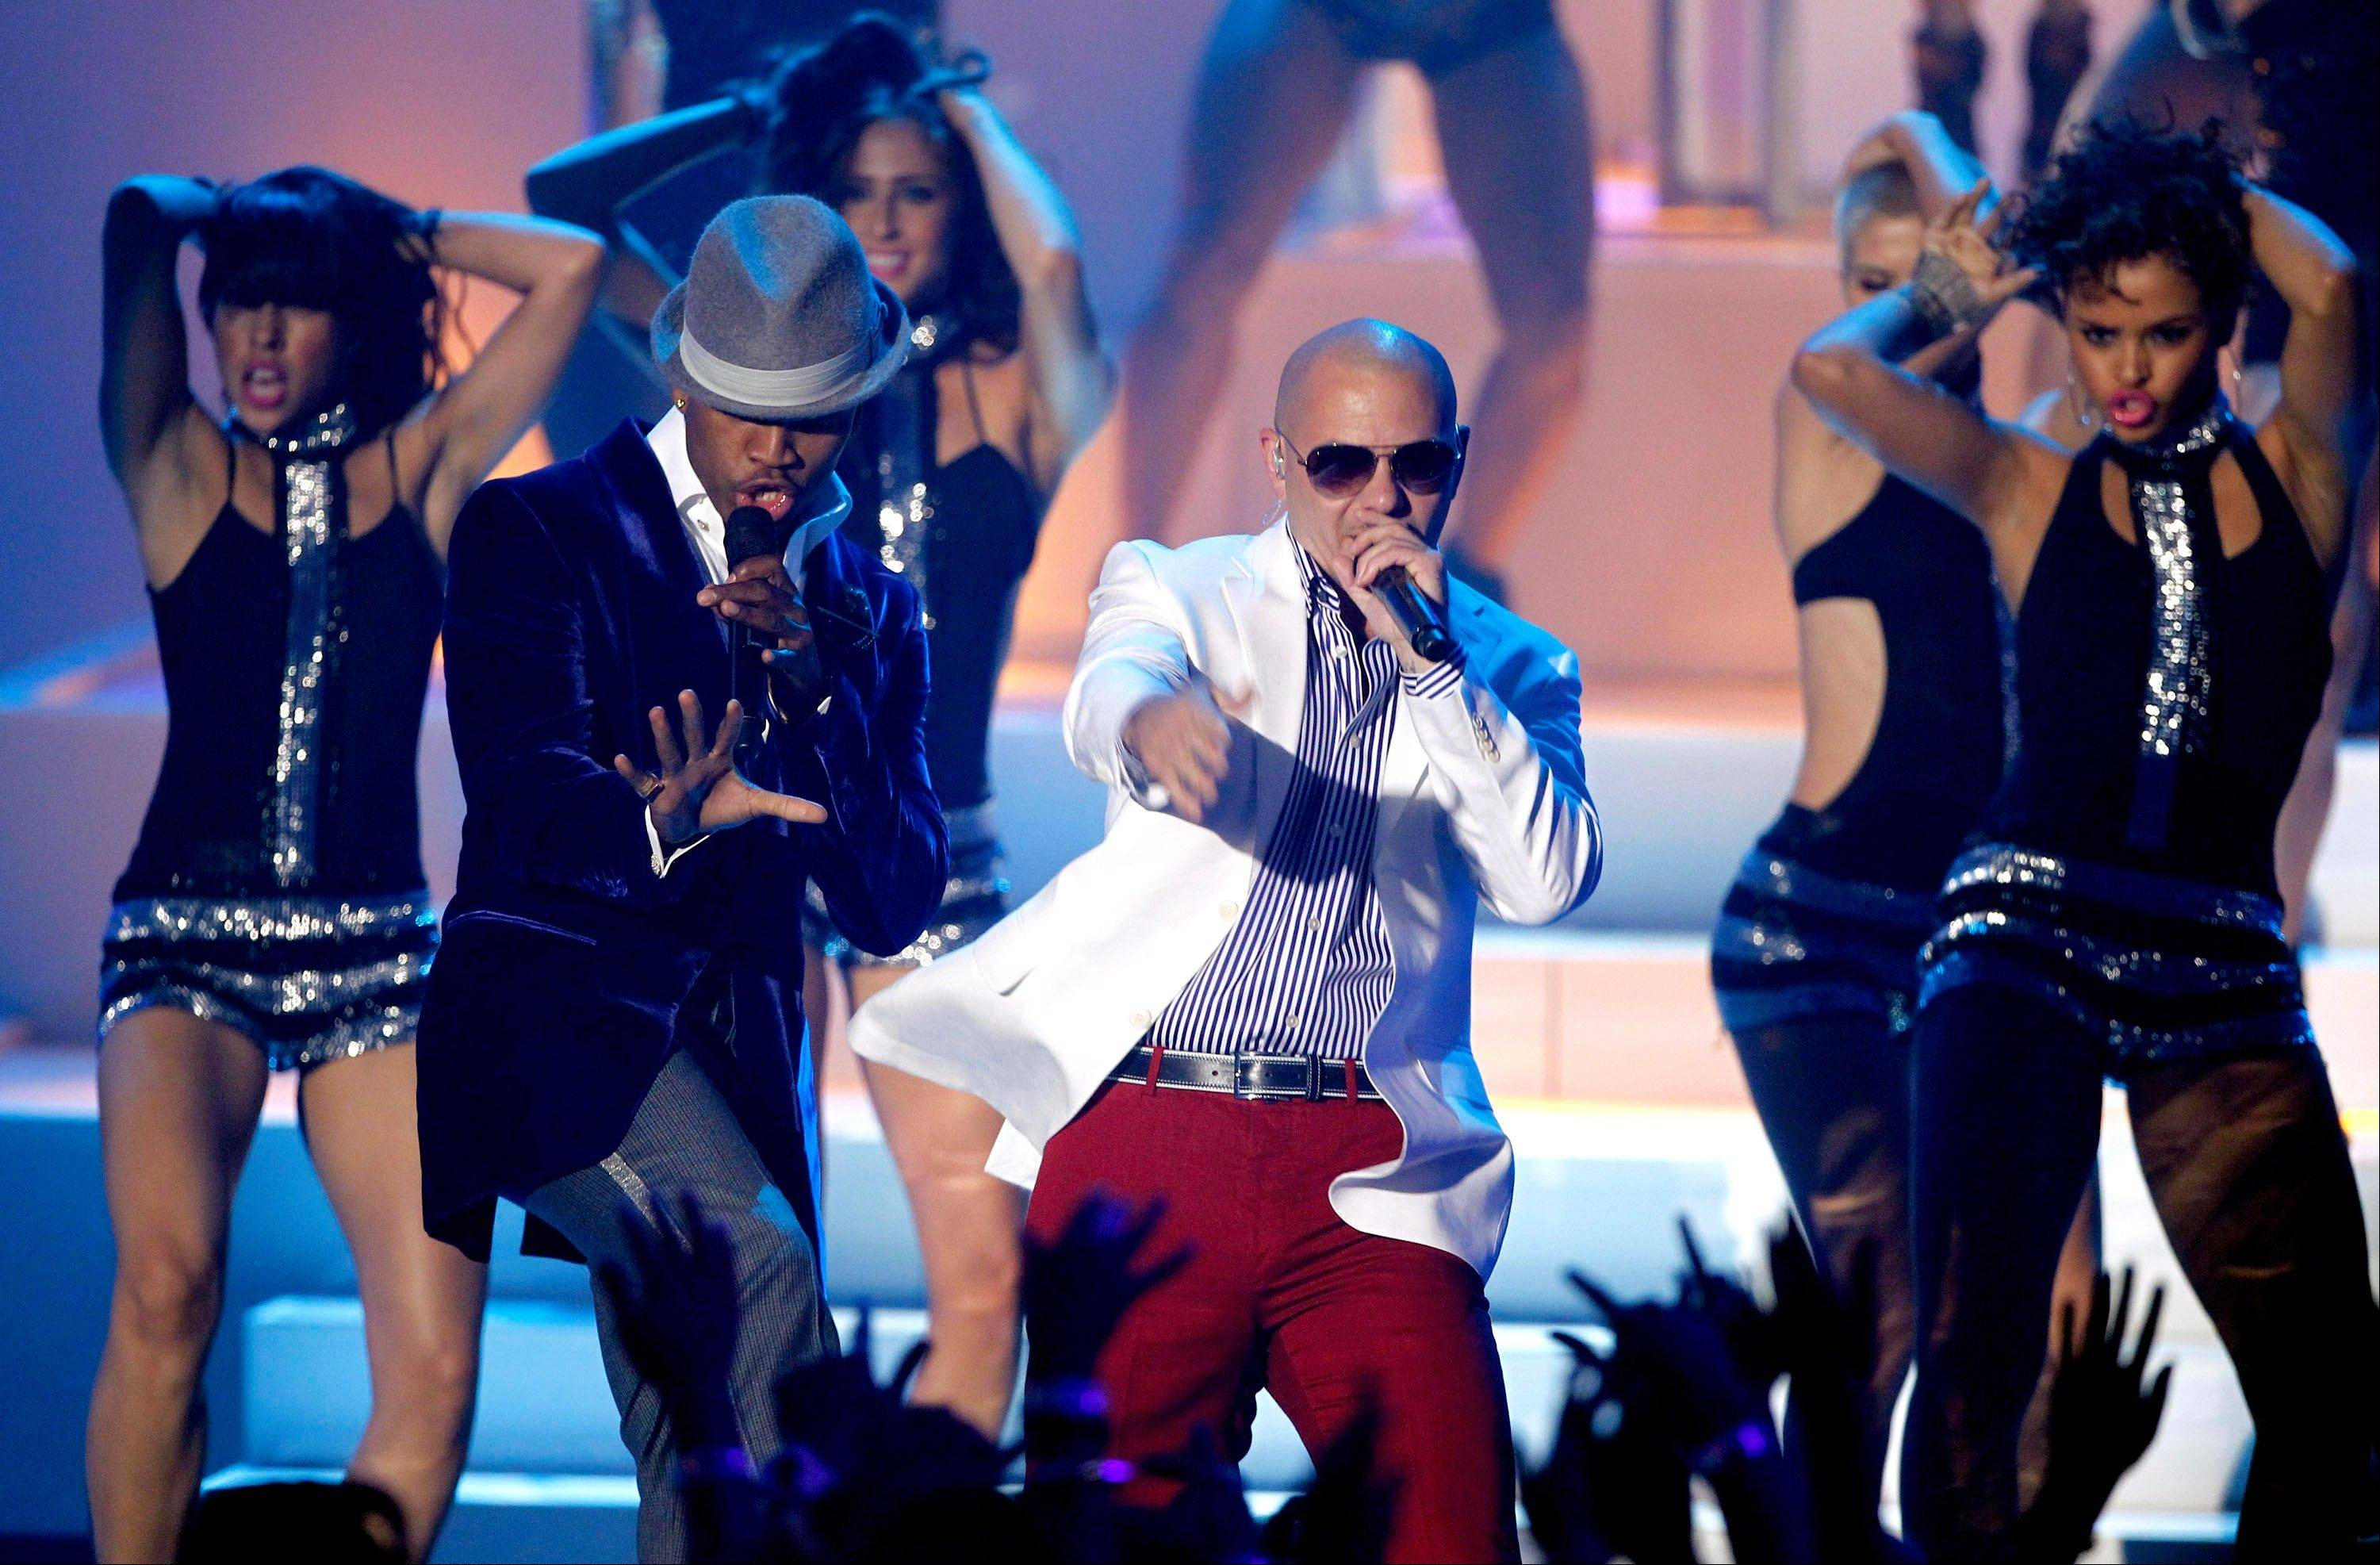 Ne-Yo, left, and Pitbull perform onstage at the MTV Video Music Awards on Sunday in Los Angeles.